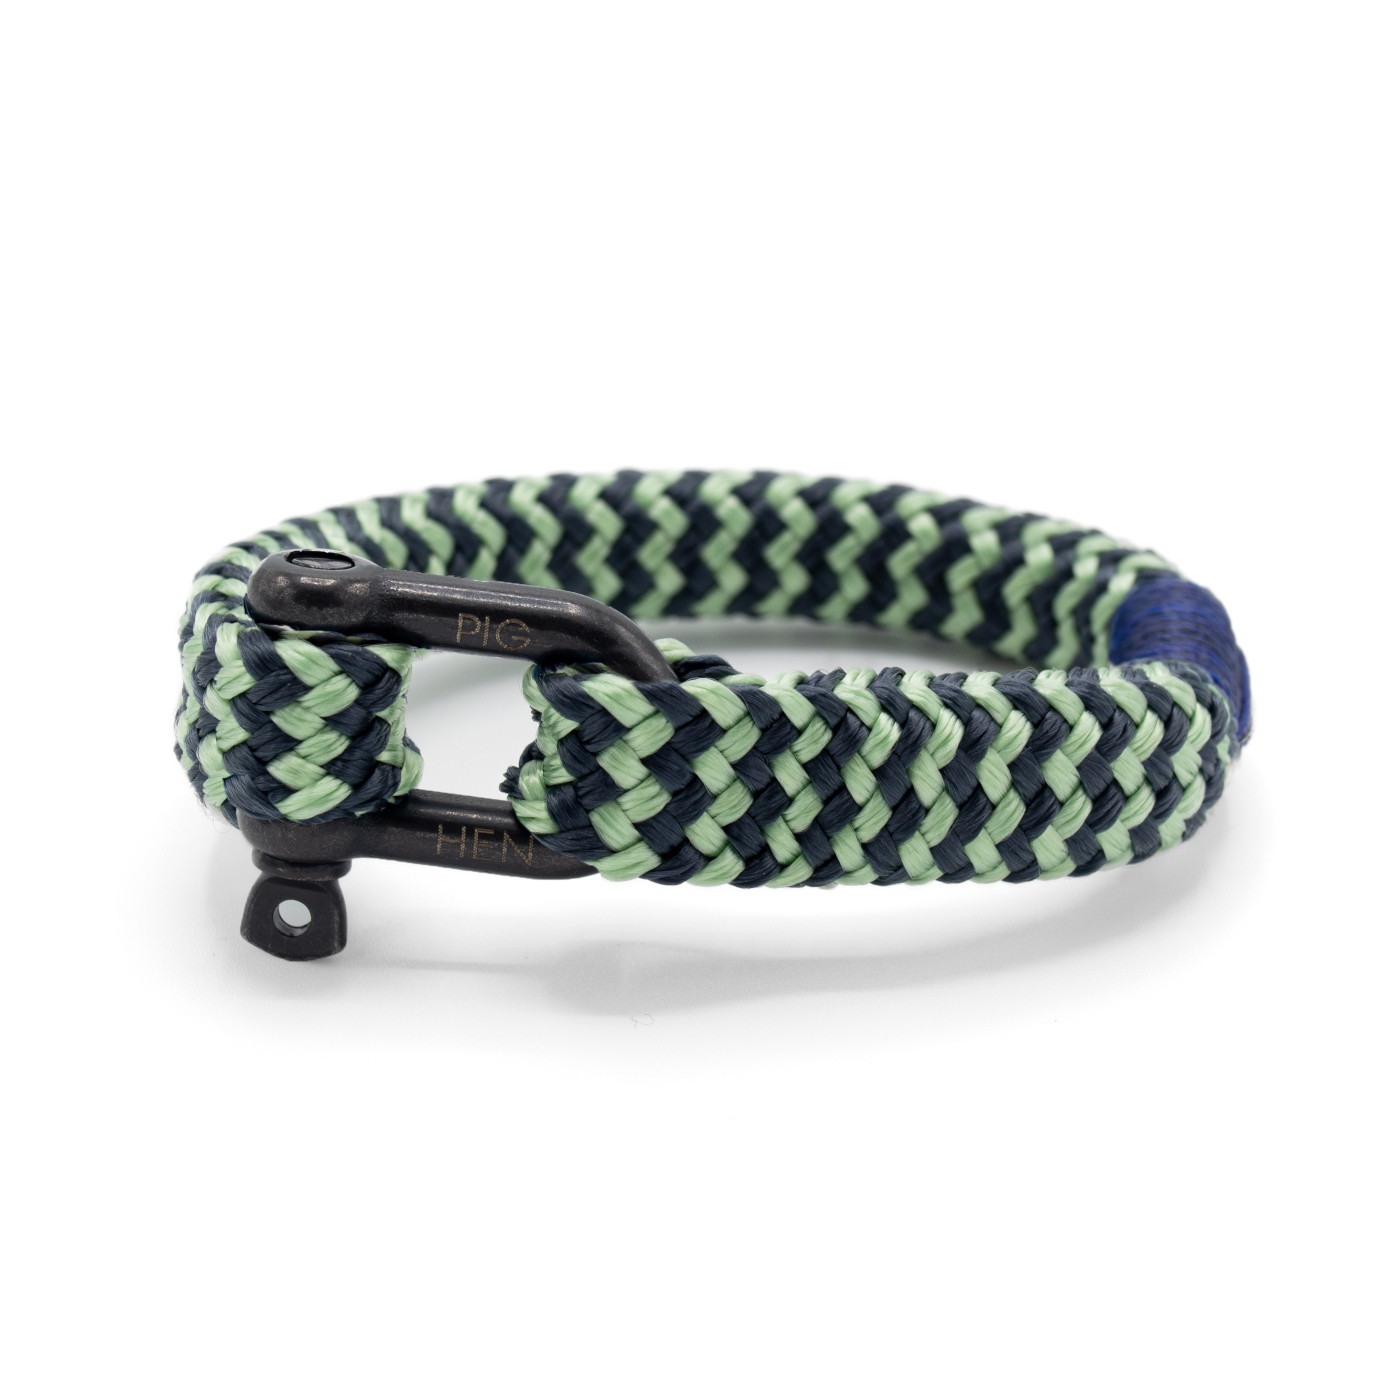 Pig and Hen Gorgeous George Mint Green/Slate Gray Stripe Armband P14-SS19-251822 (Lengte: 17.00-20.00 cm)